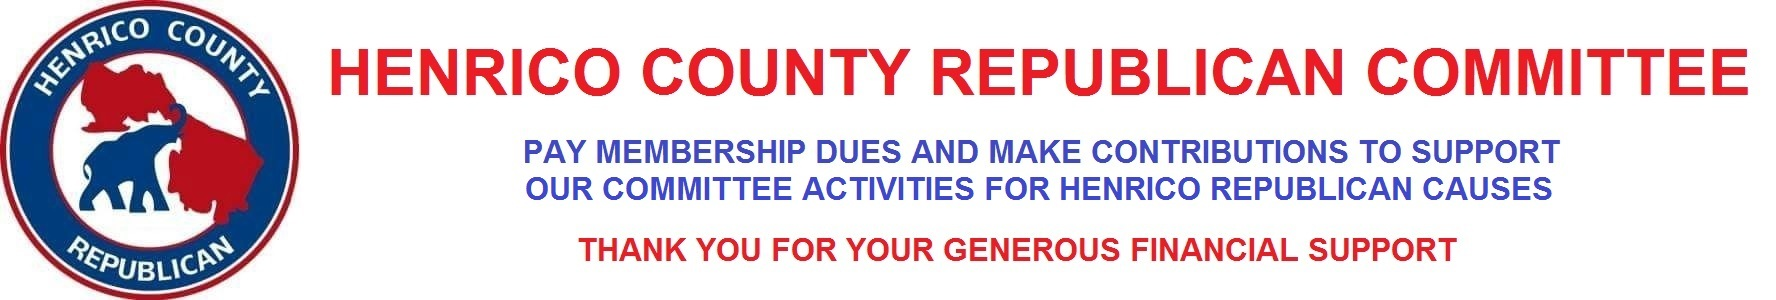 Henrico County Republican Committee: Dues and Contributions